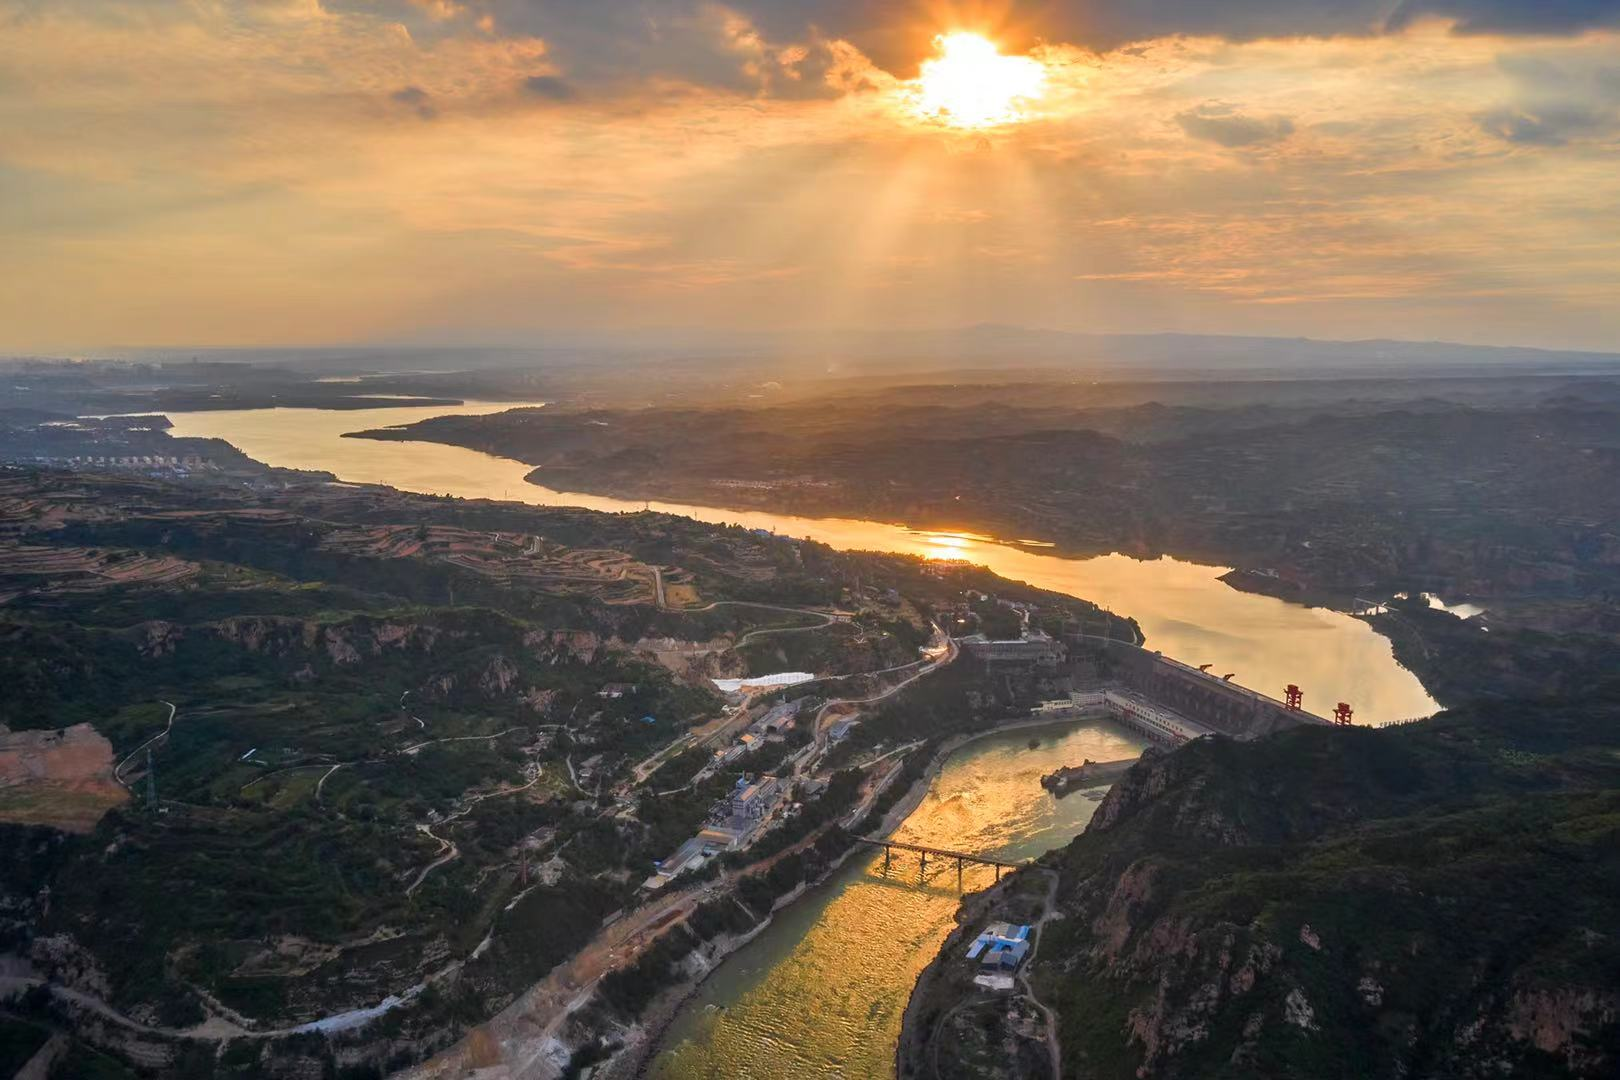 Views of the Sanmenxia water control project in Central China's Henan